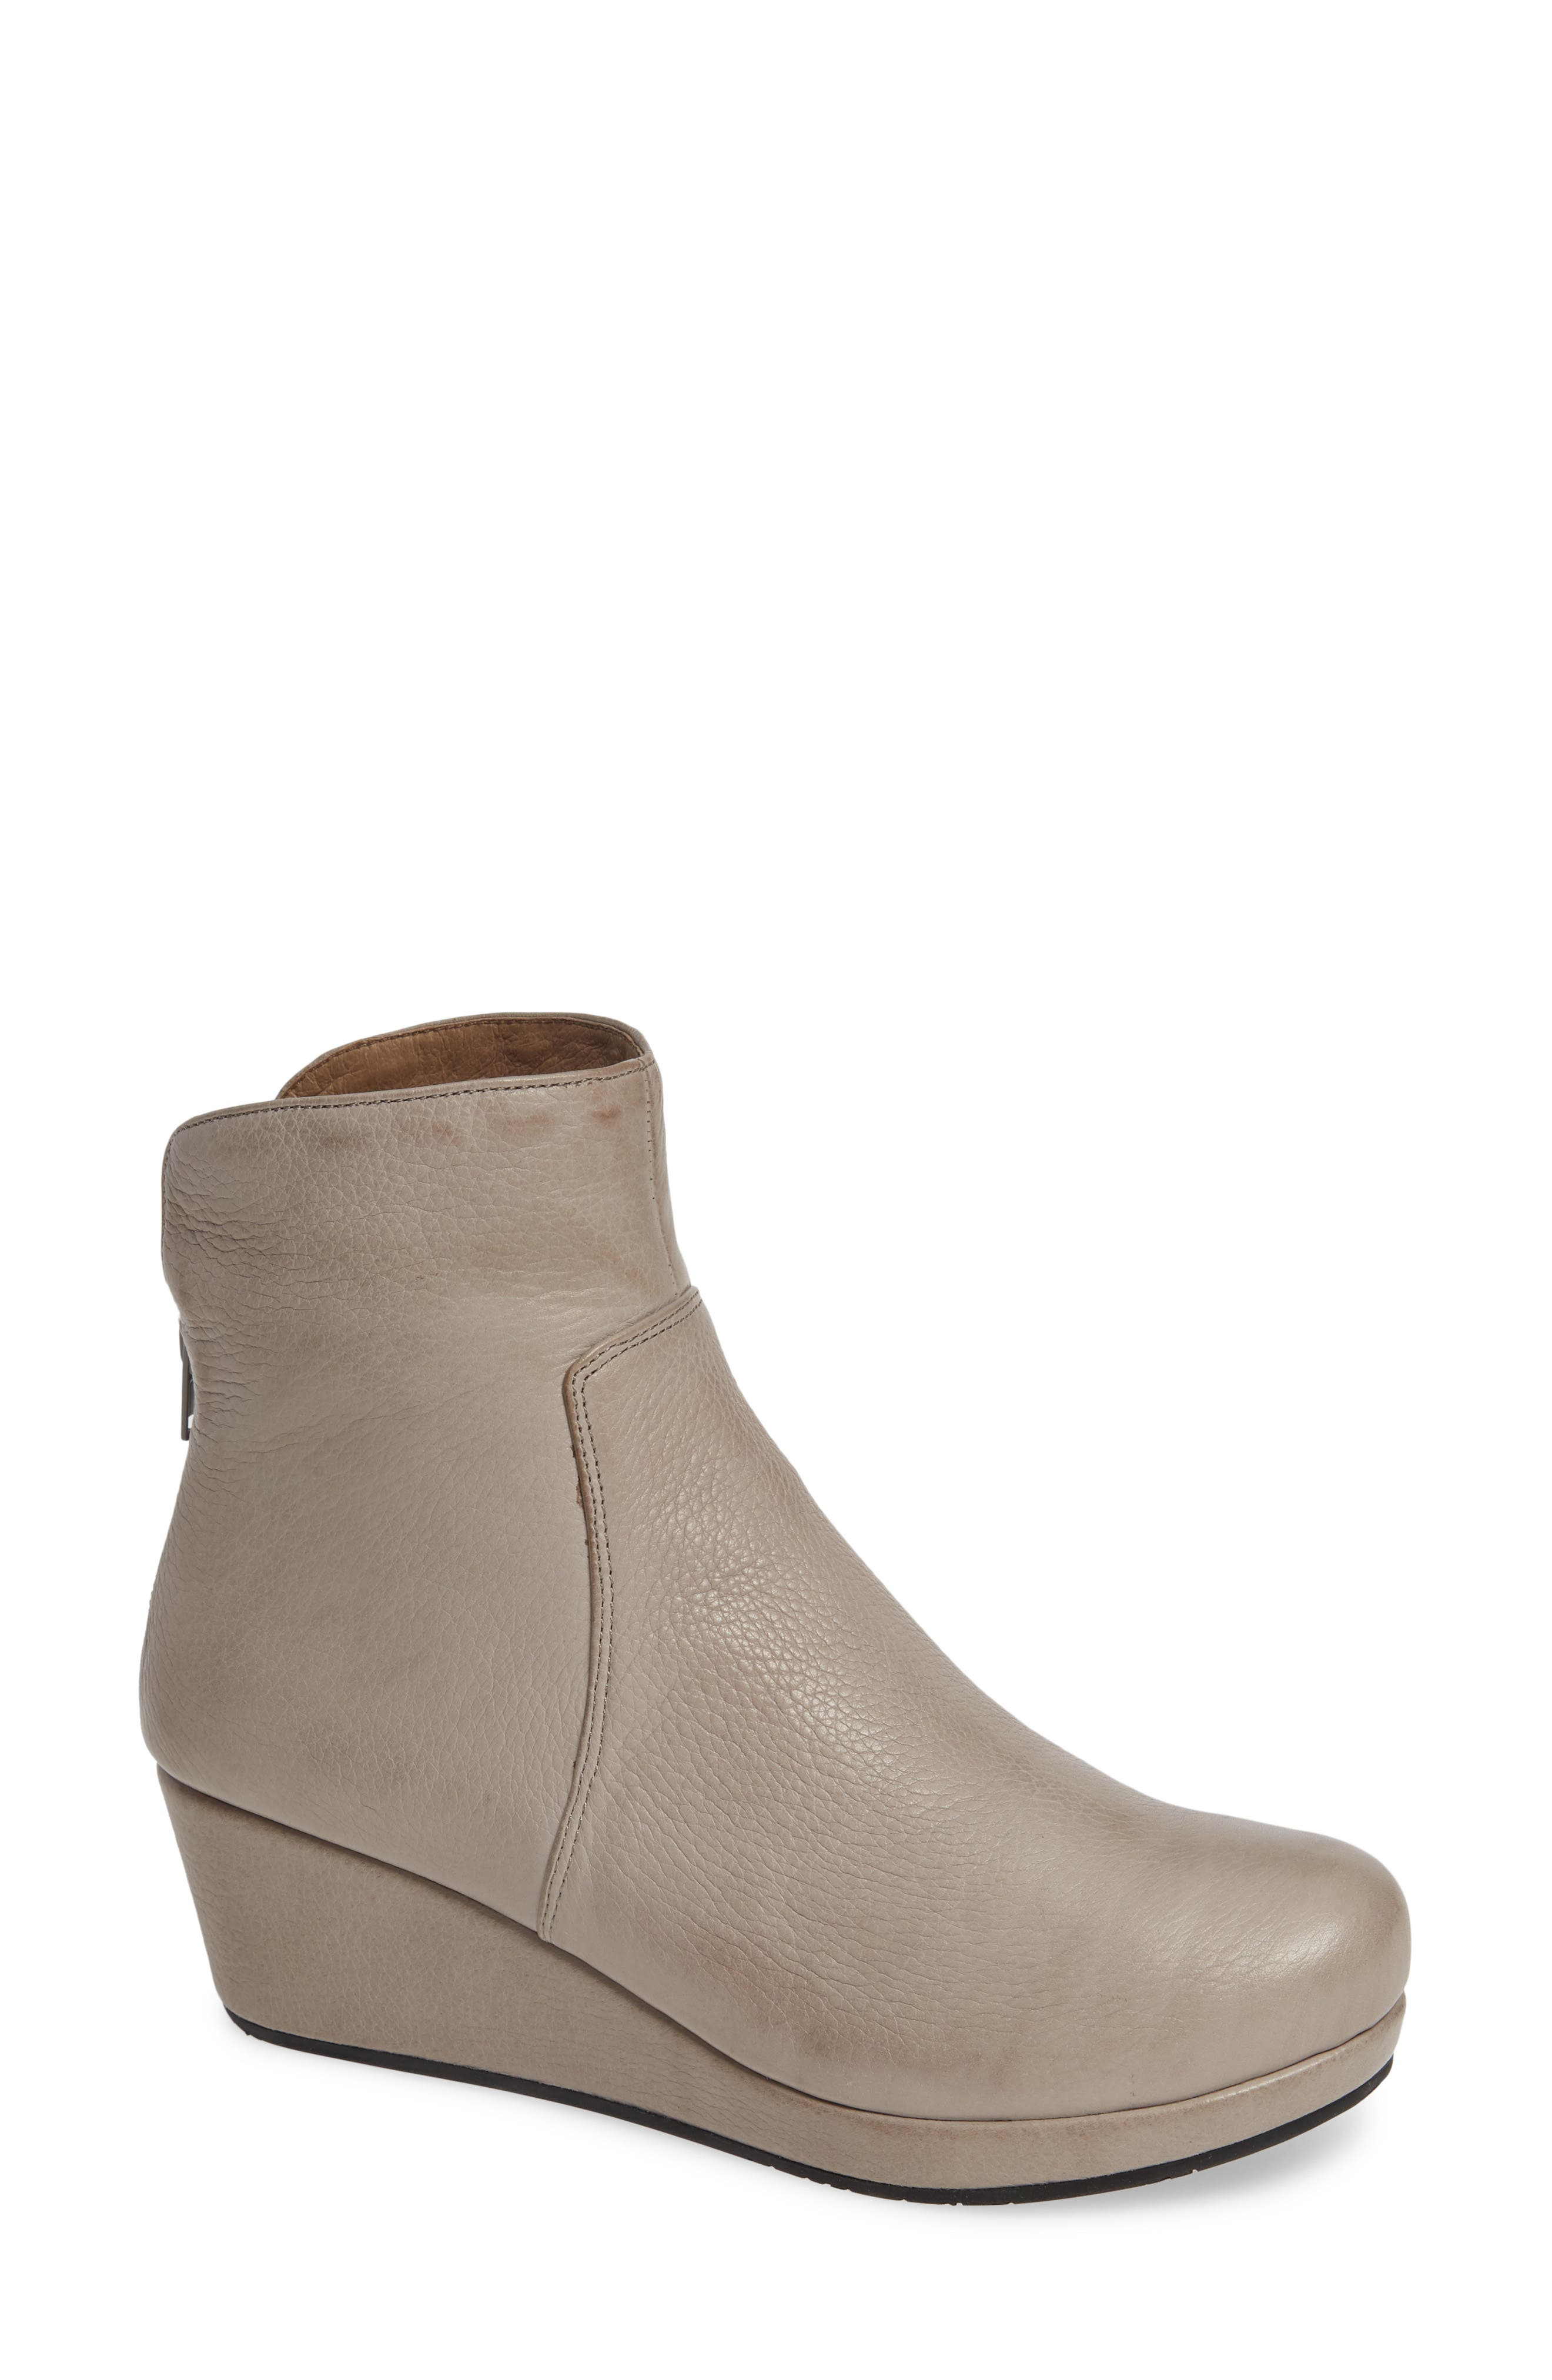 Yarden Wedge Bootie,                         Main,                         color, GREY LEATHER